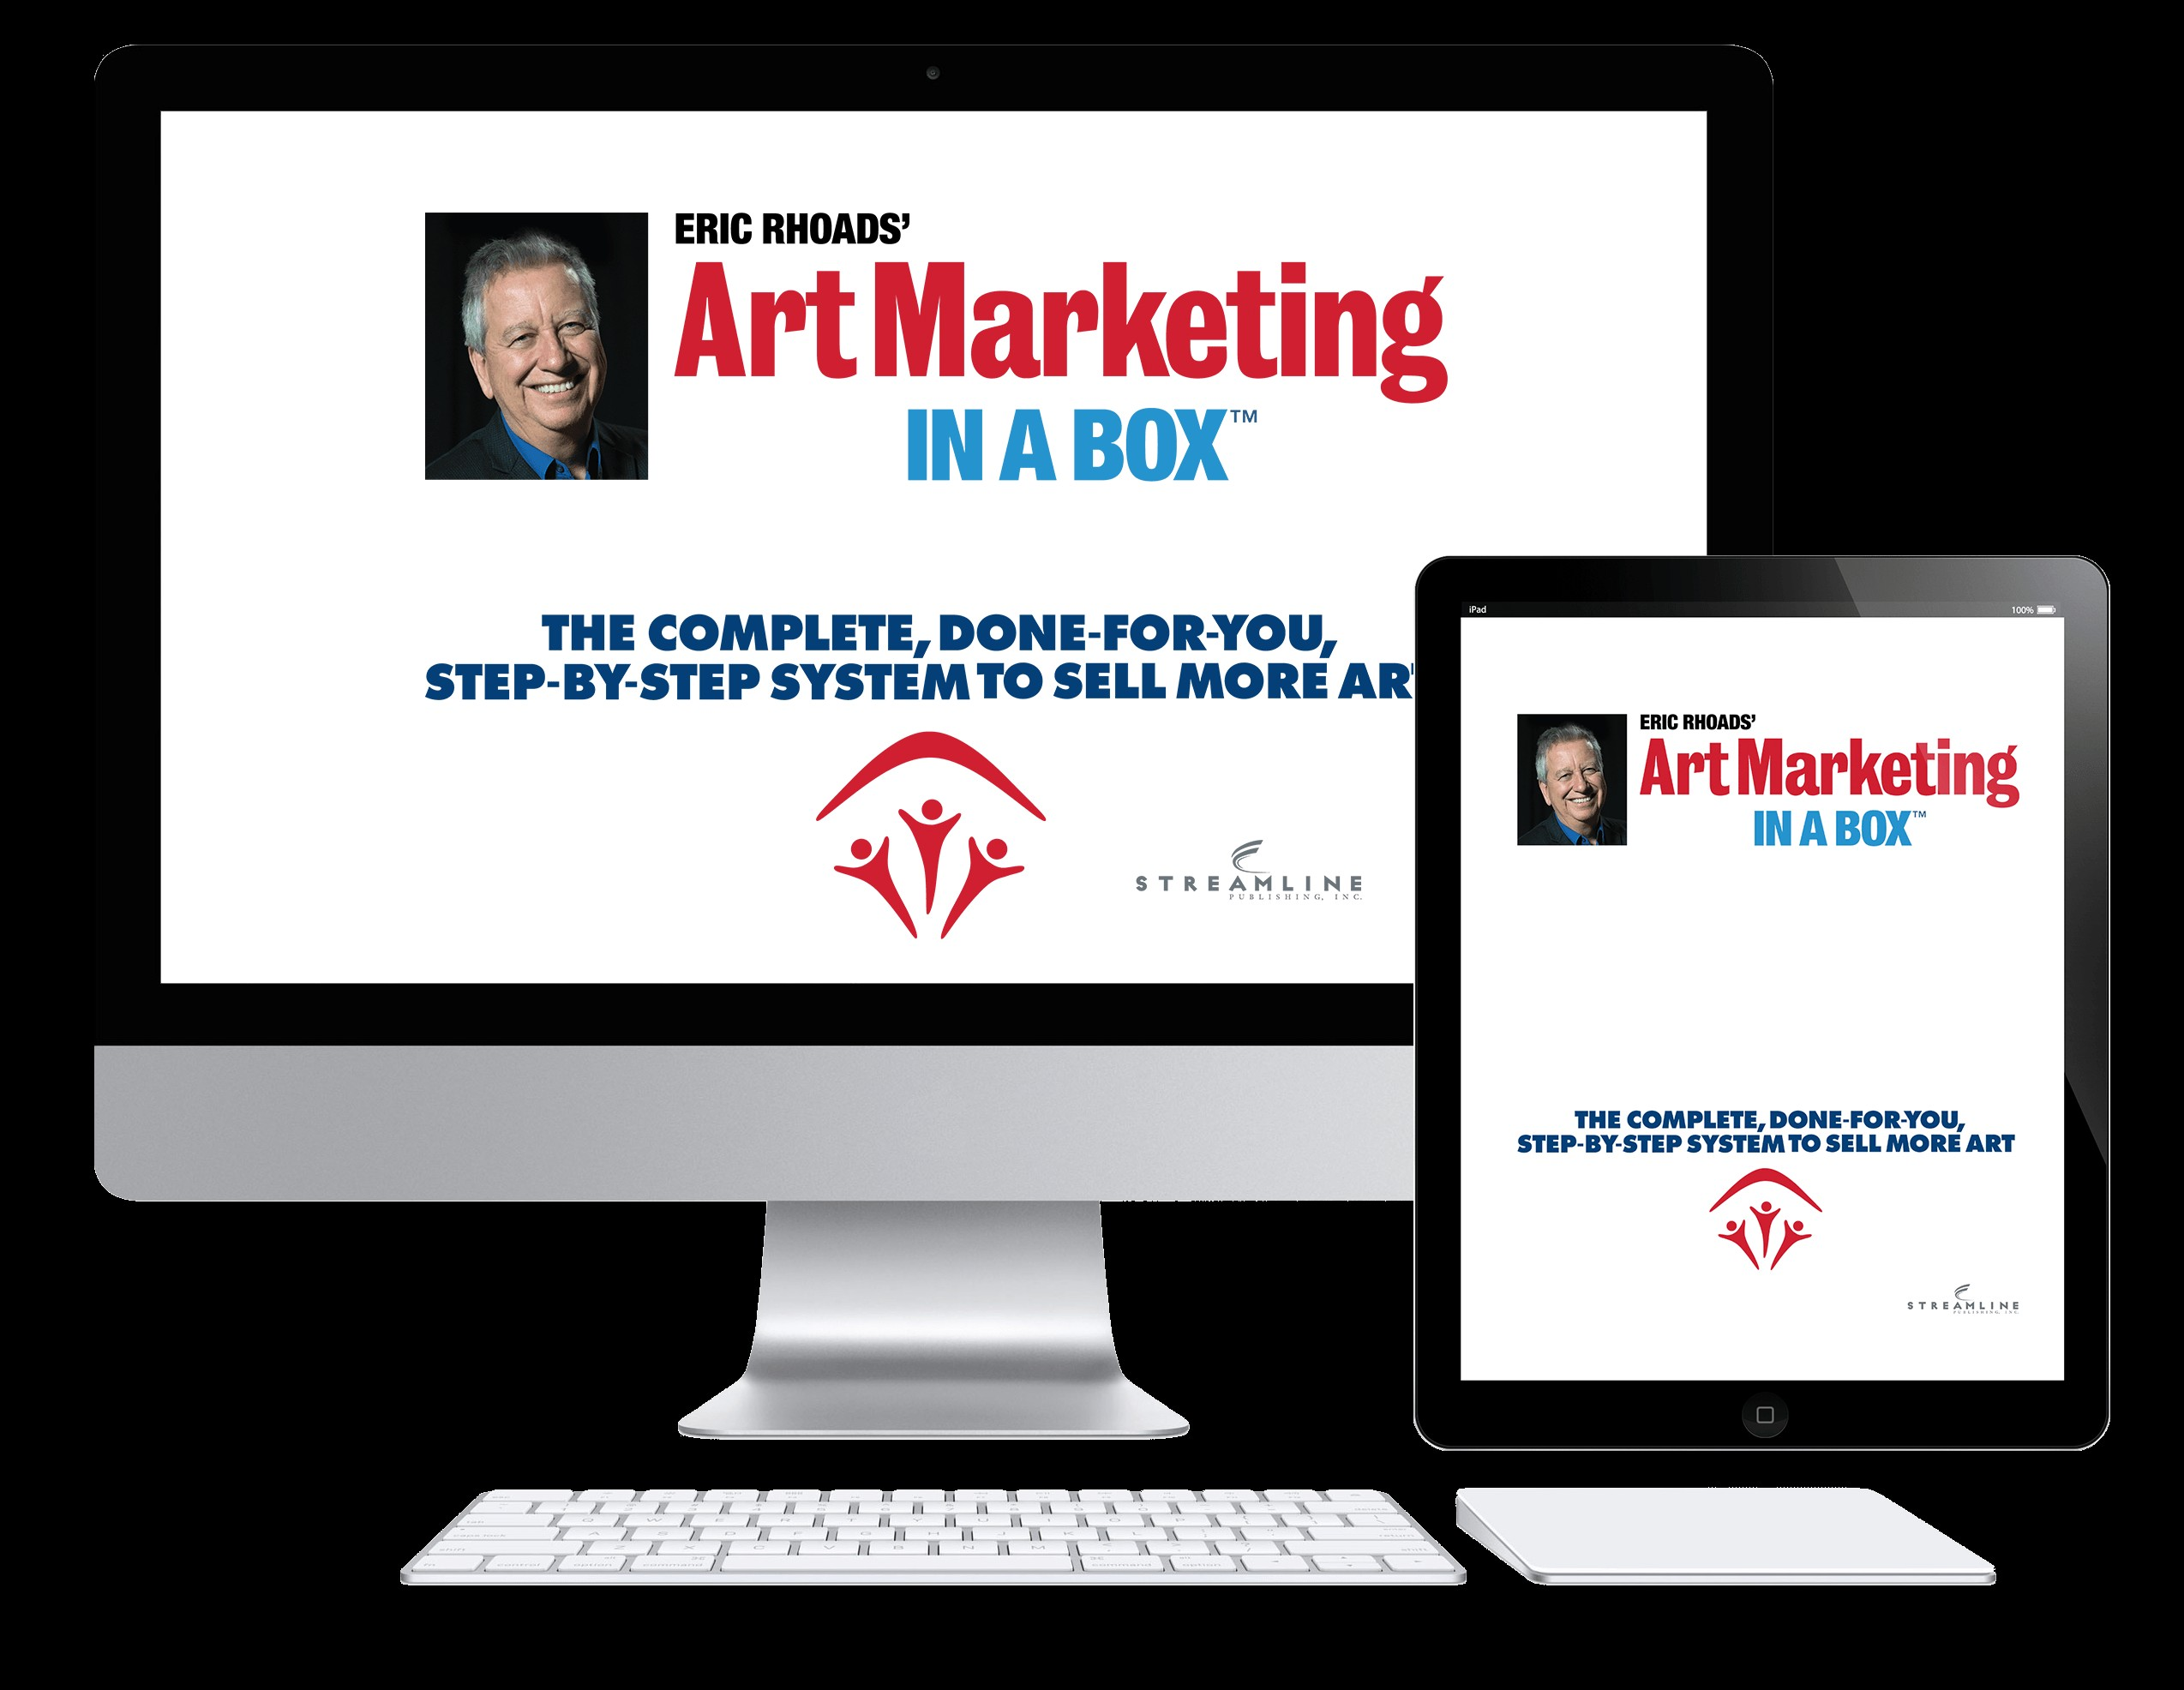 Art Marketing in a Box